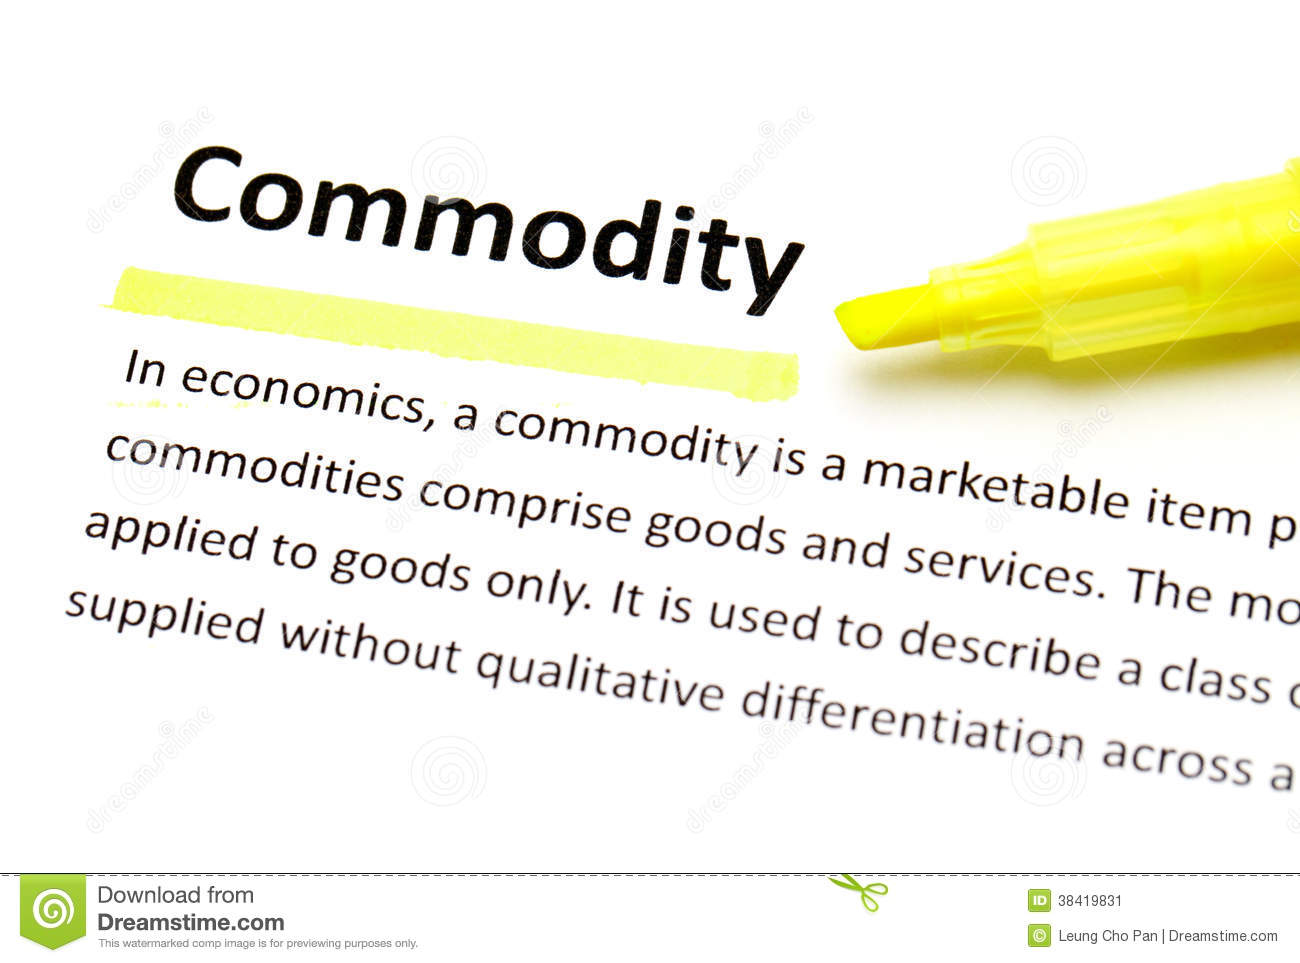 Sale of securities or commodity futures not owned by the seller (who